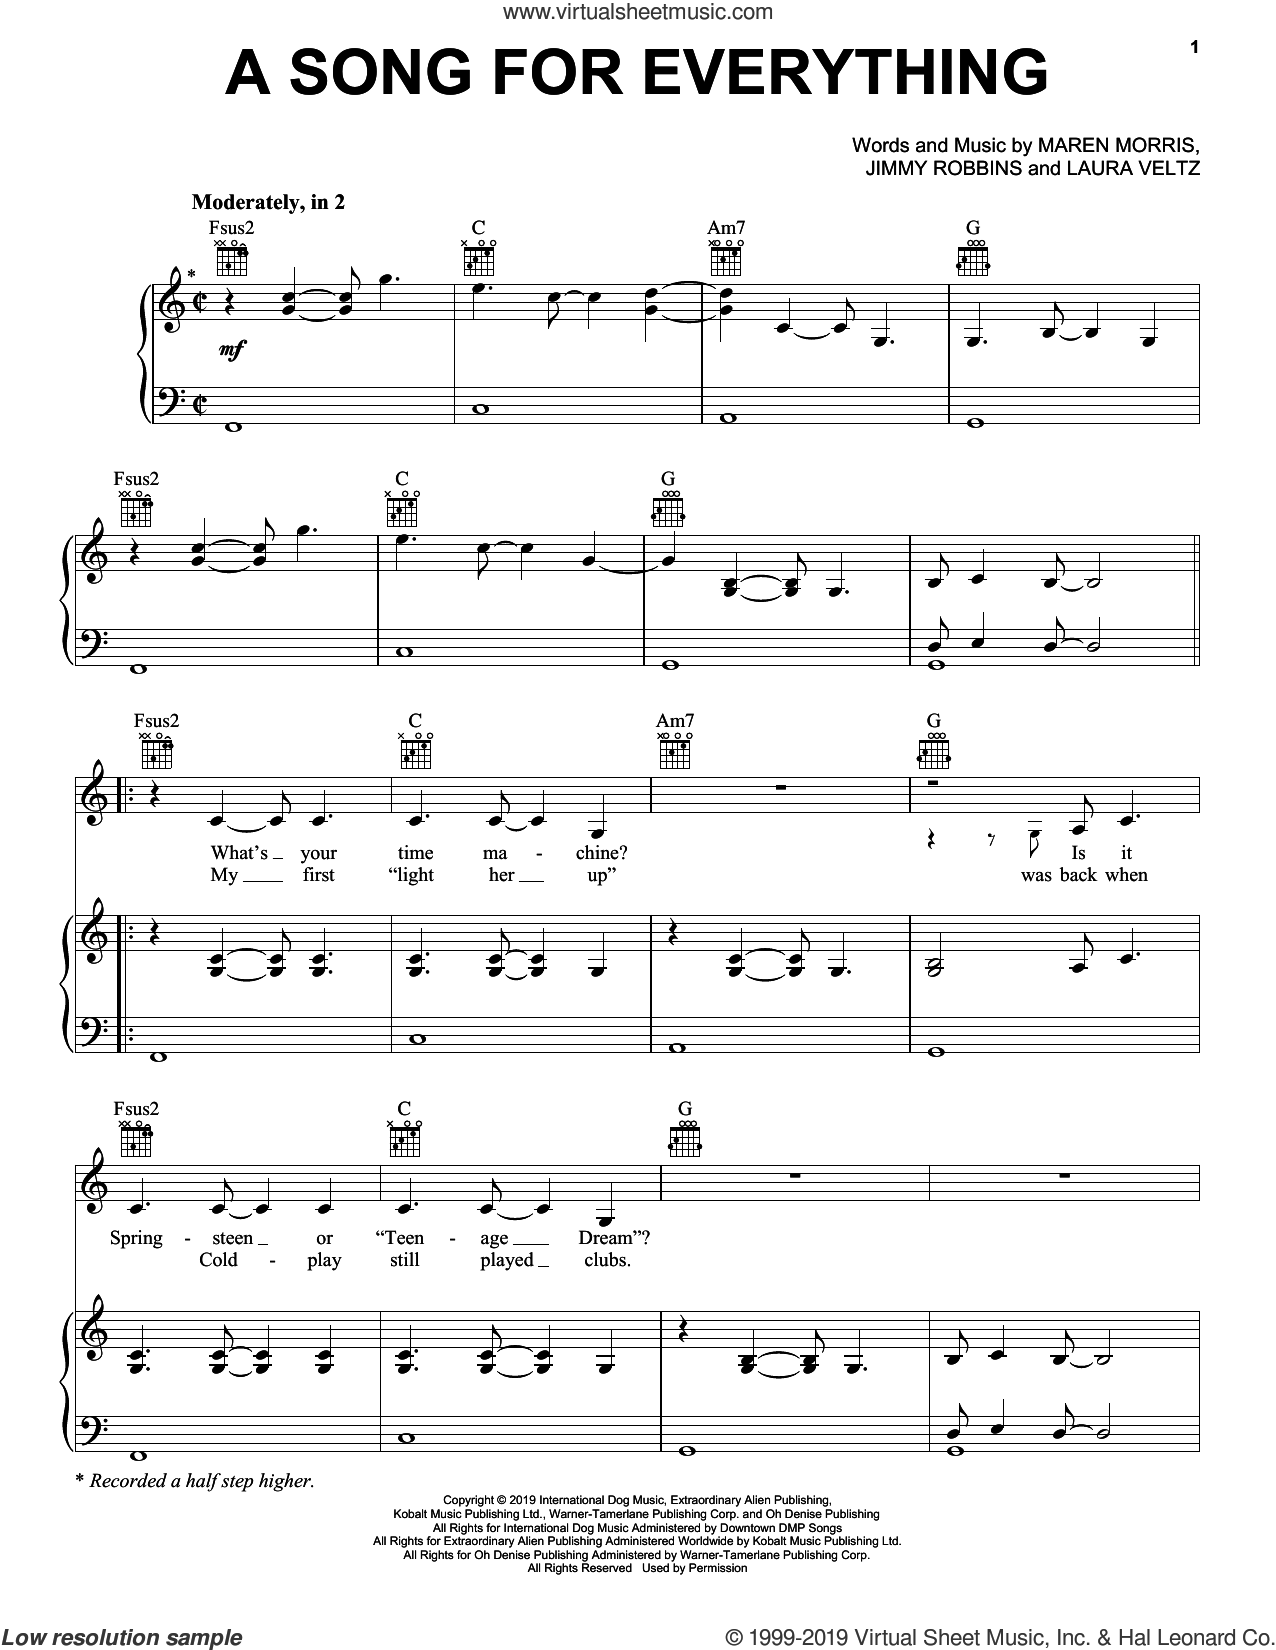 A Song For Everything sheet music for voice, piano or guitar by Maren Morris, Jimmy Robbins and Laura Veltz, intermediate skill level